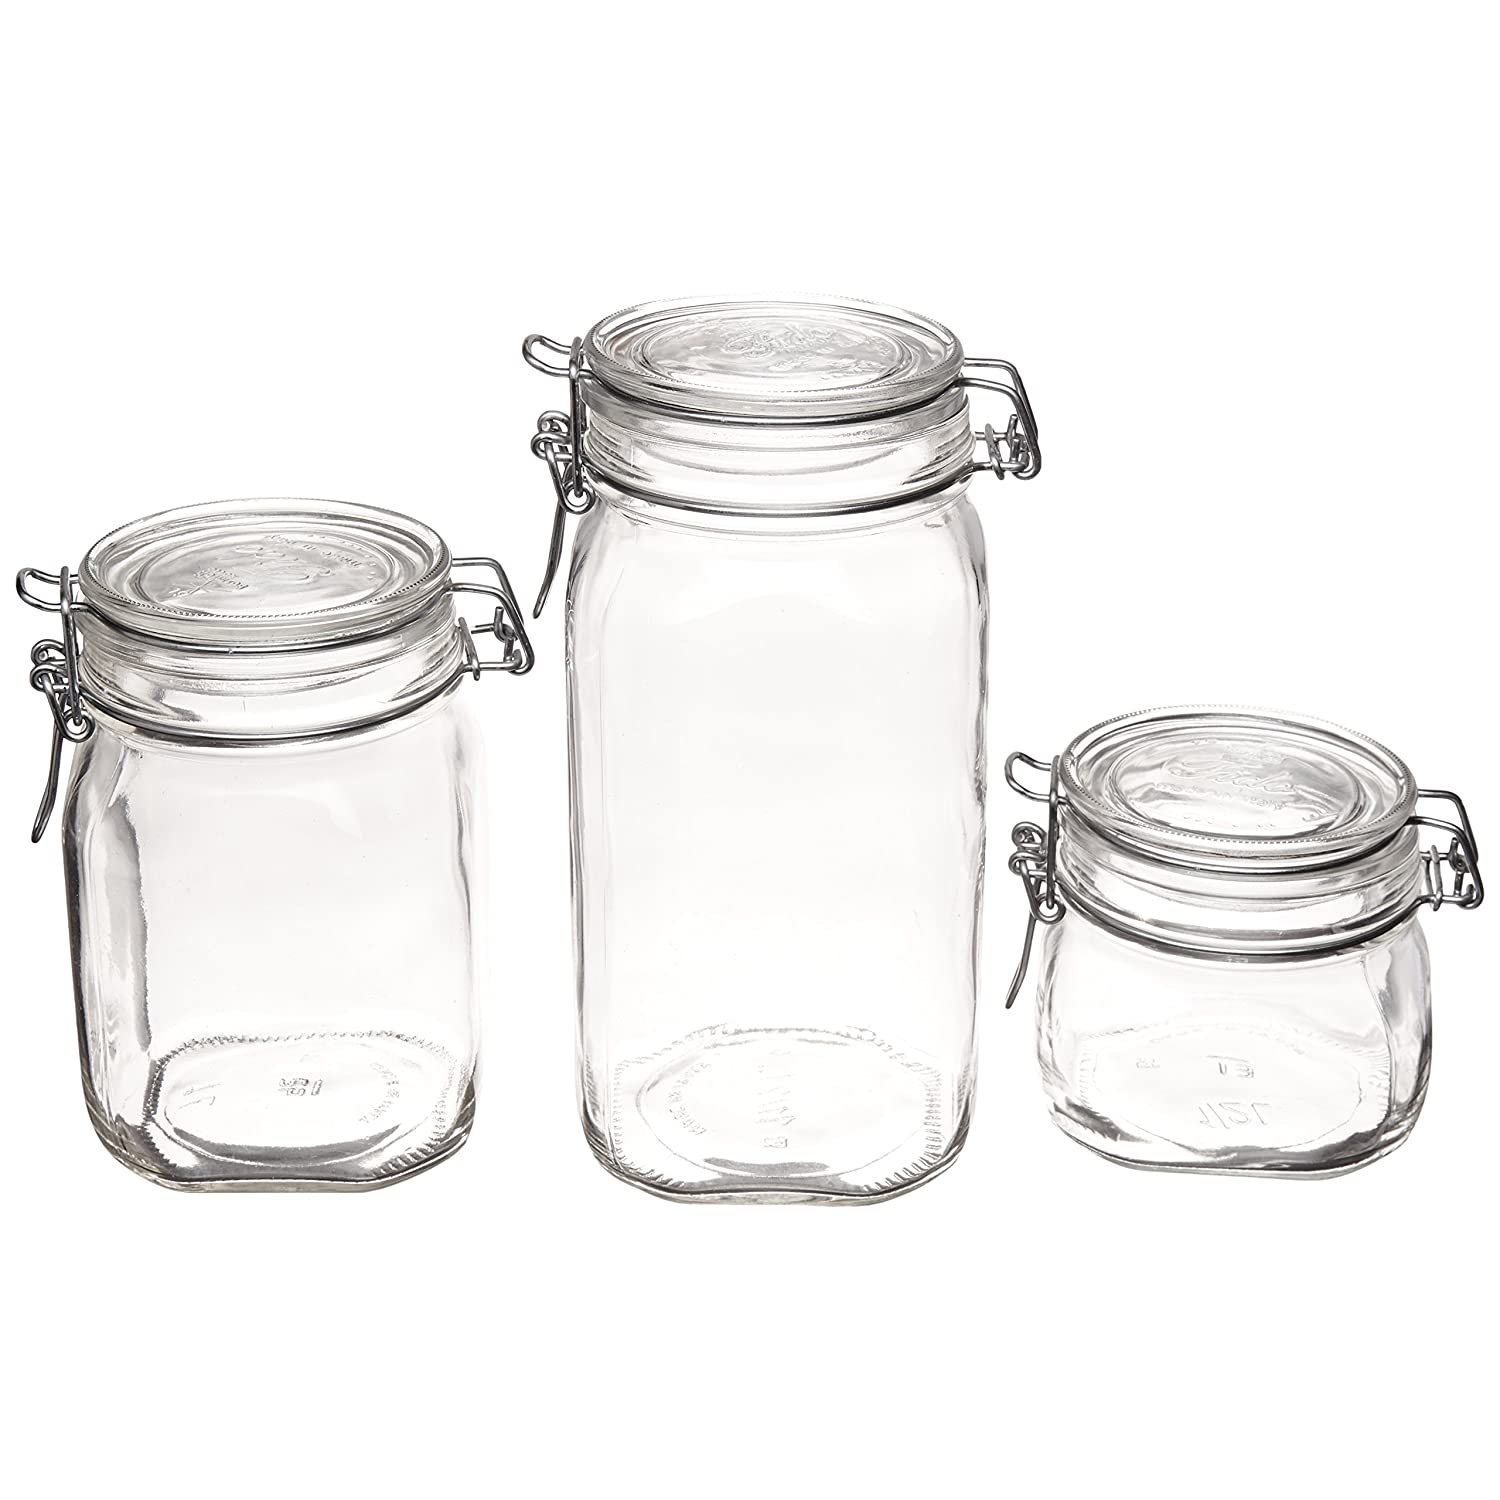 Bormioli Rocco Hermetic Glass Canister Set of 3 Review